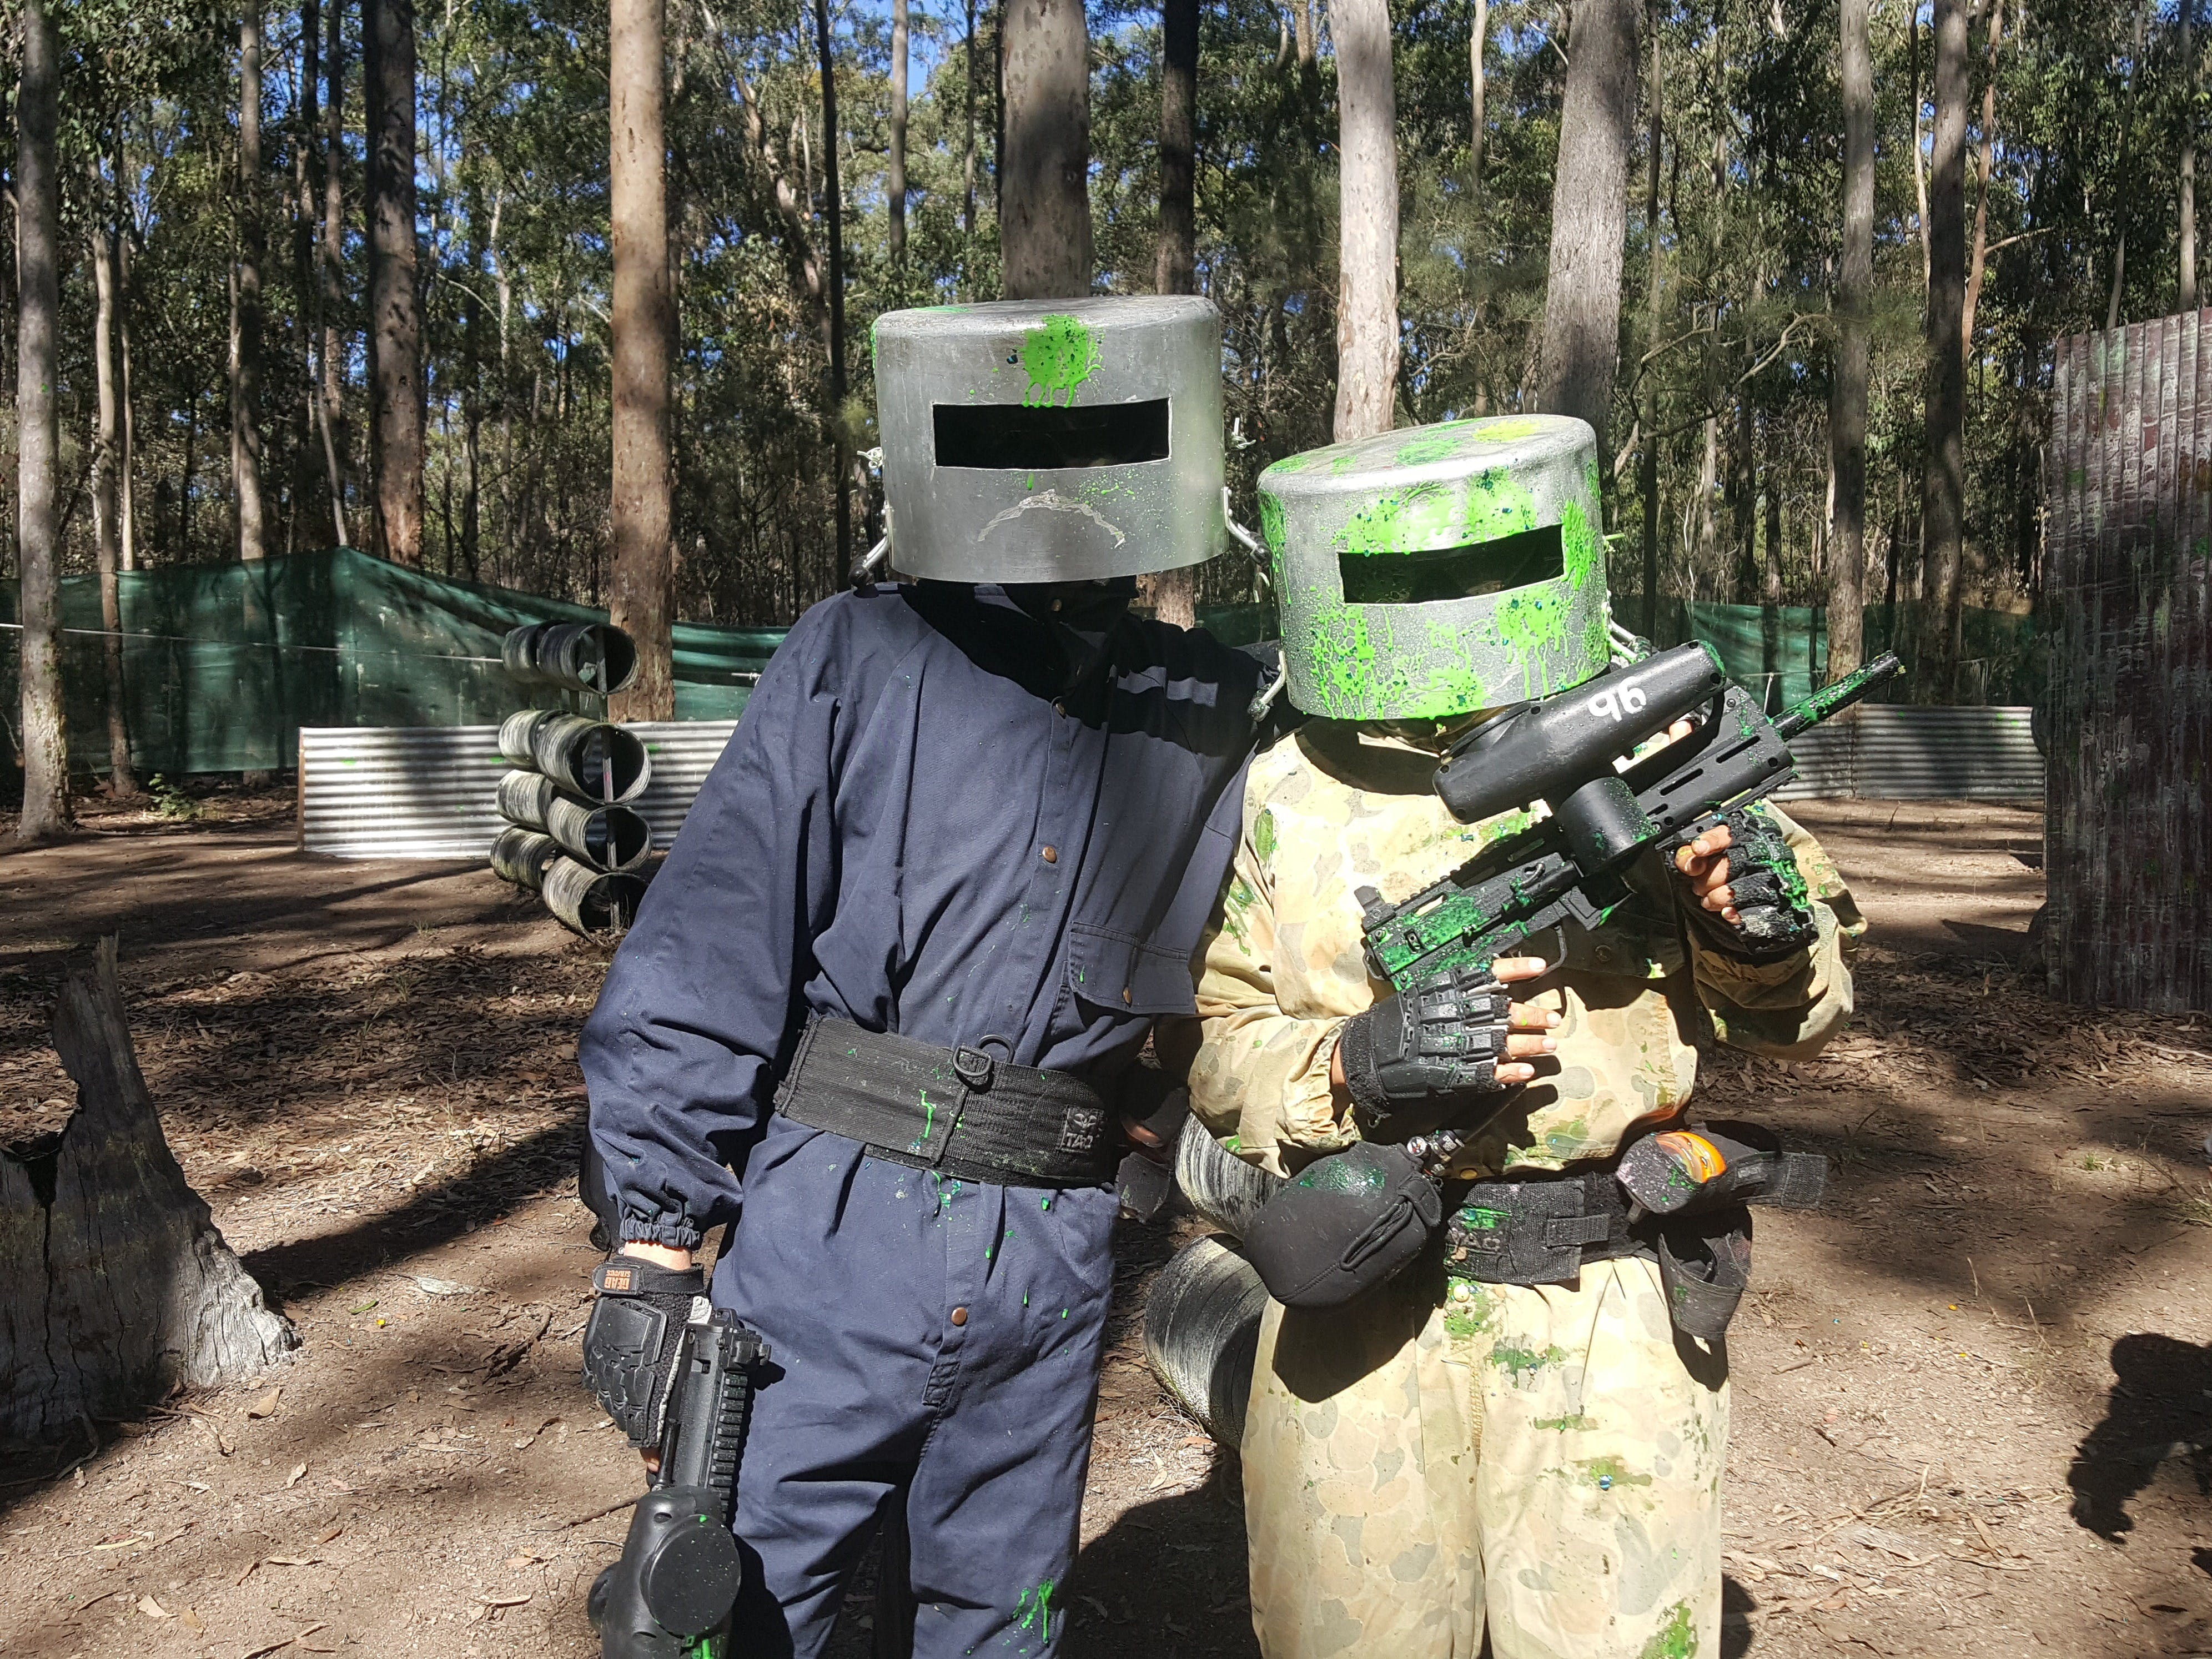 Rapid Fire Paintball - Accommodation Coffs Harbour